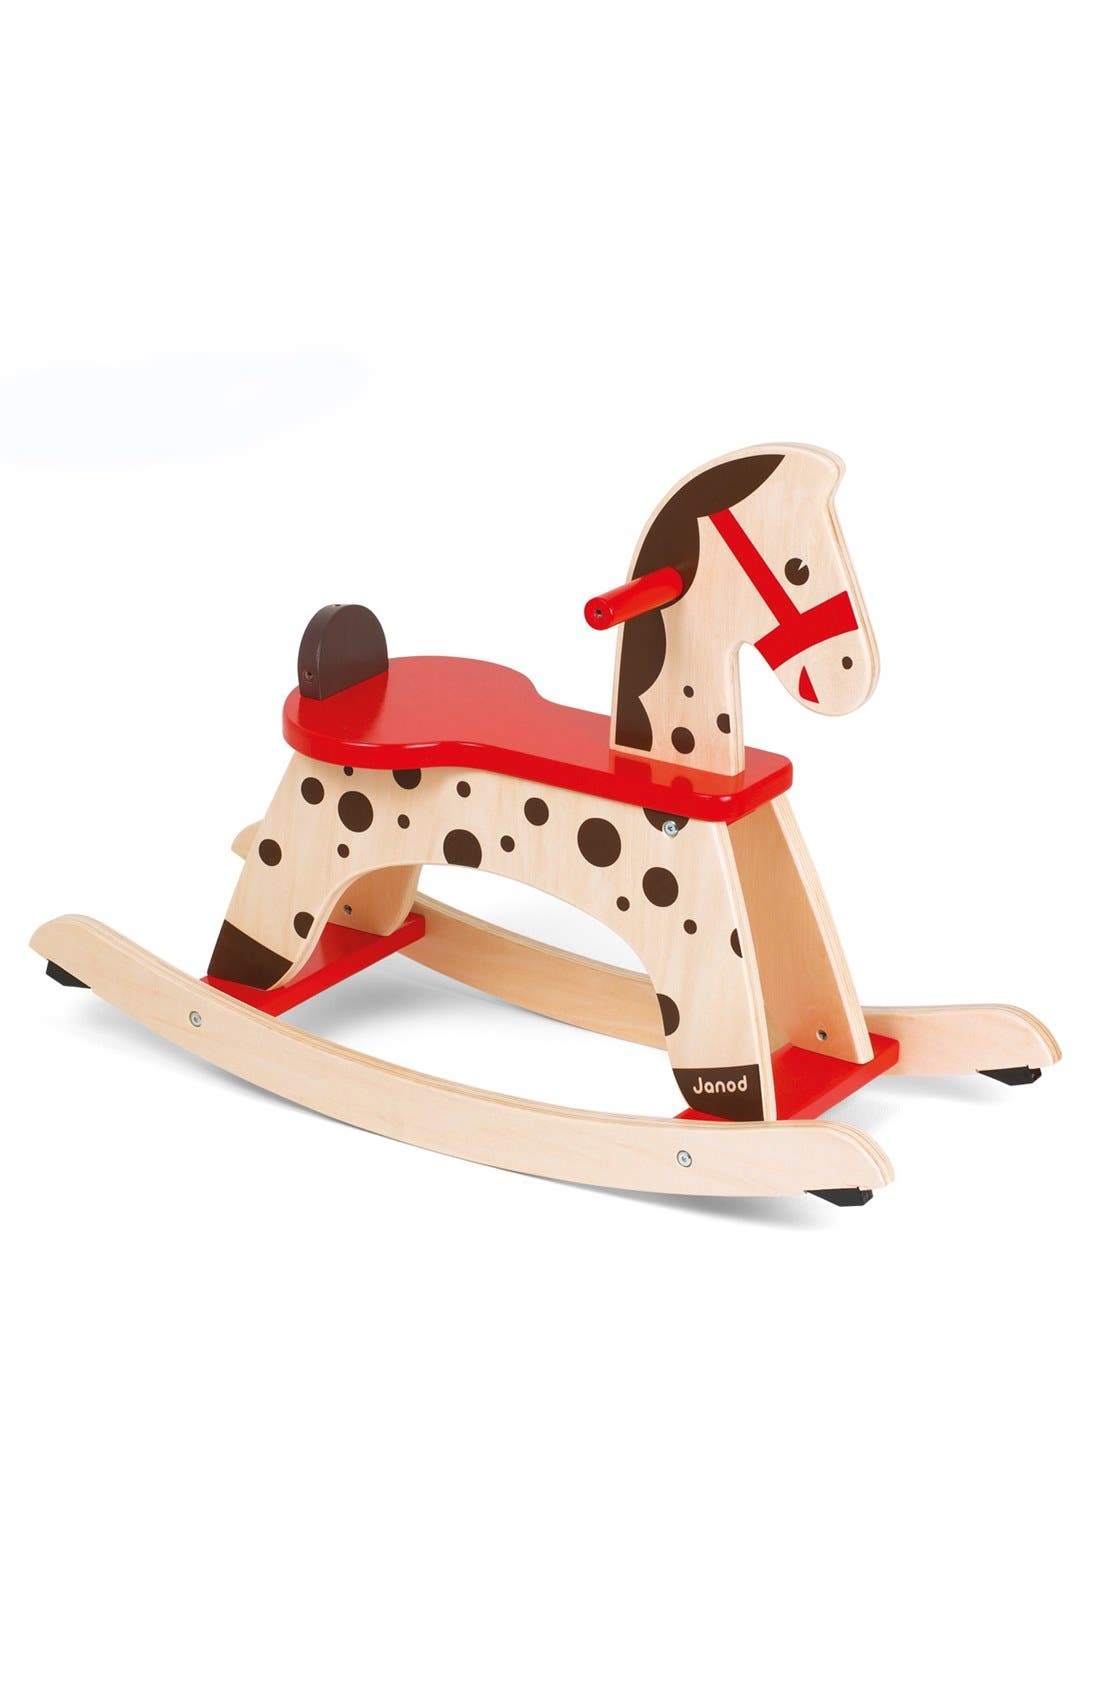 JANOD 'Caramel' Wood Rocking Horse